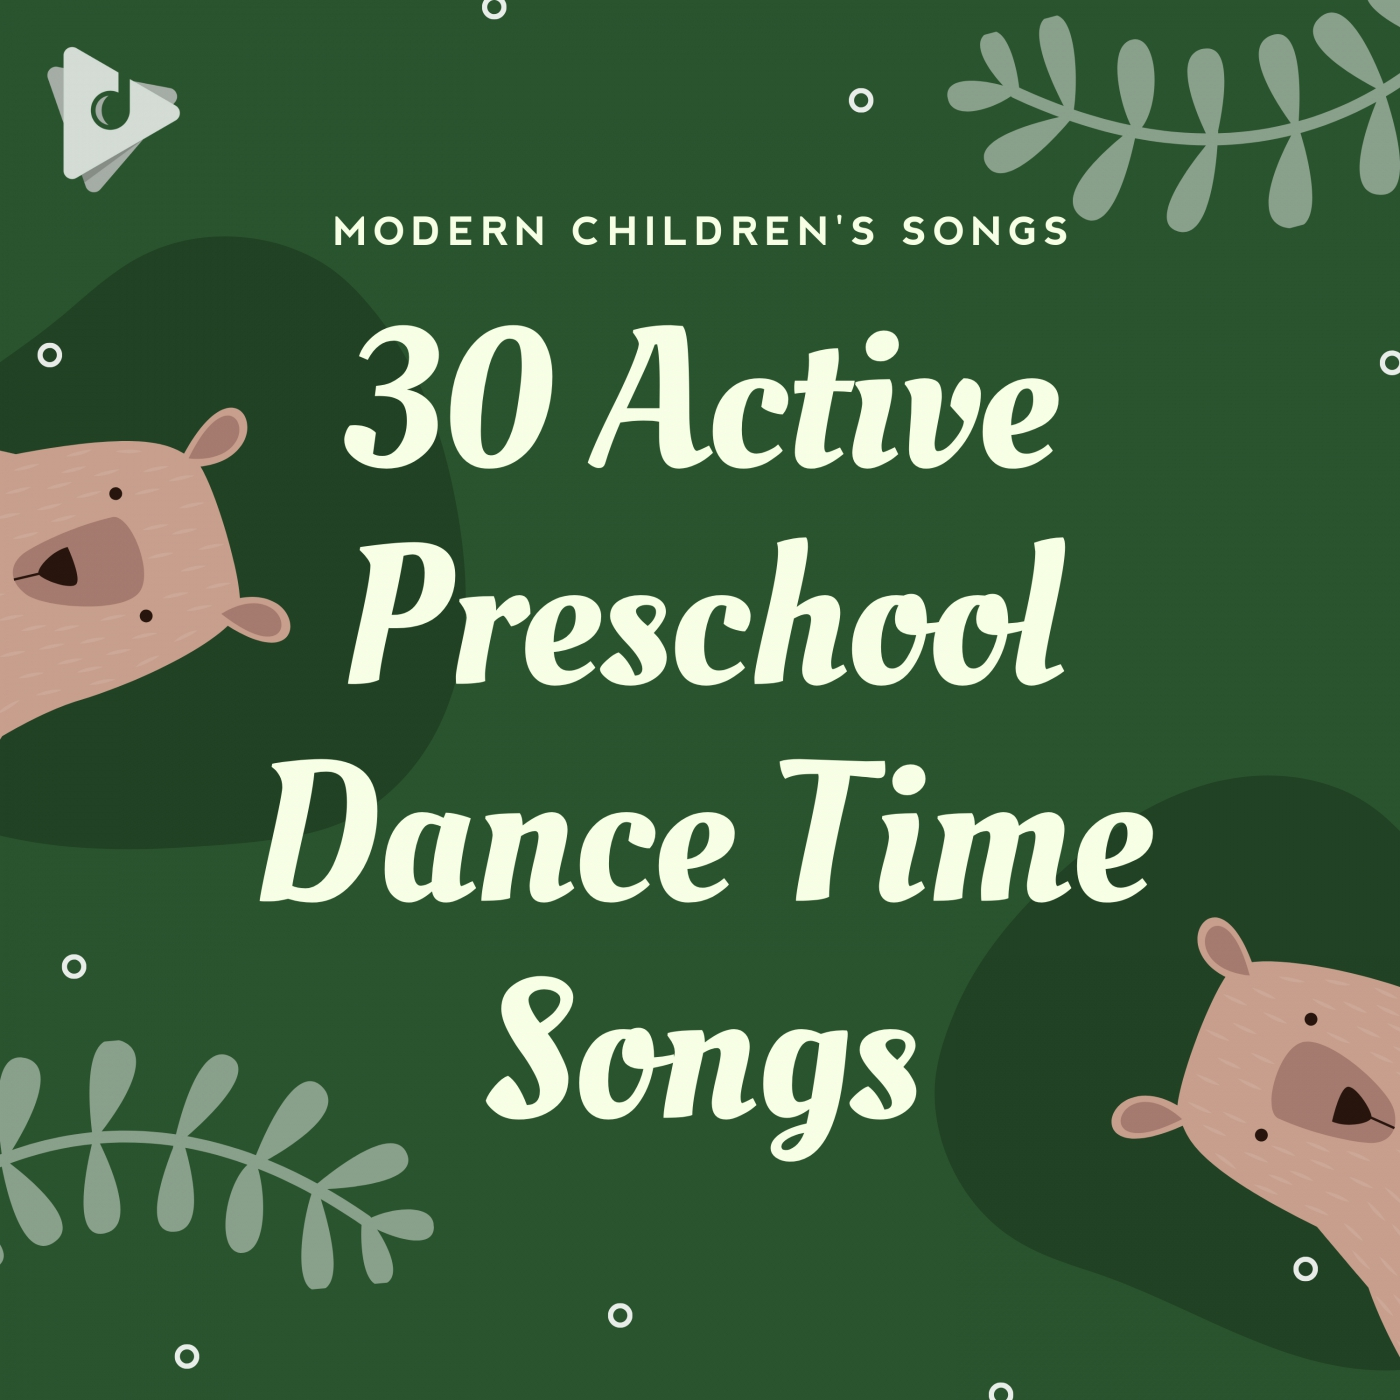 30 Active Preschool Dance Time Songs